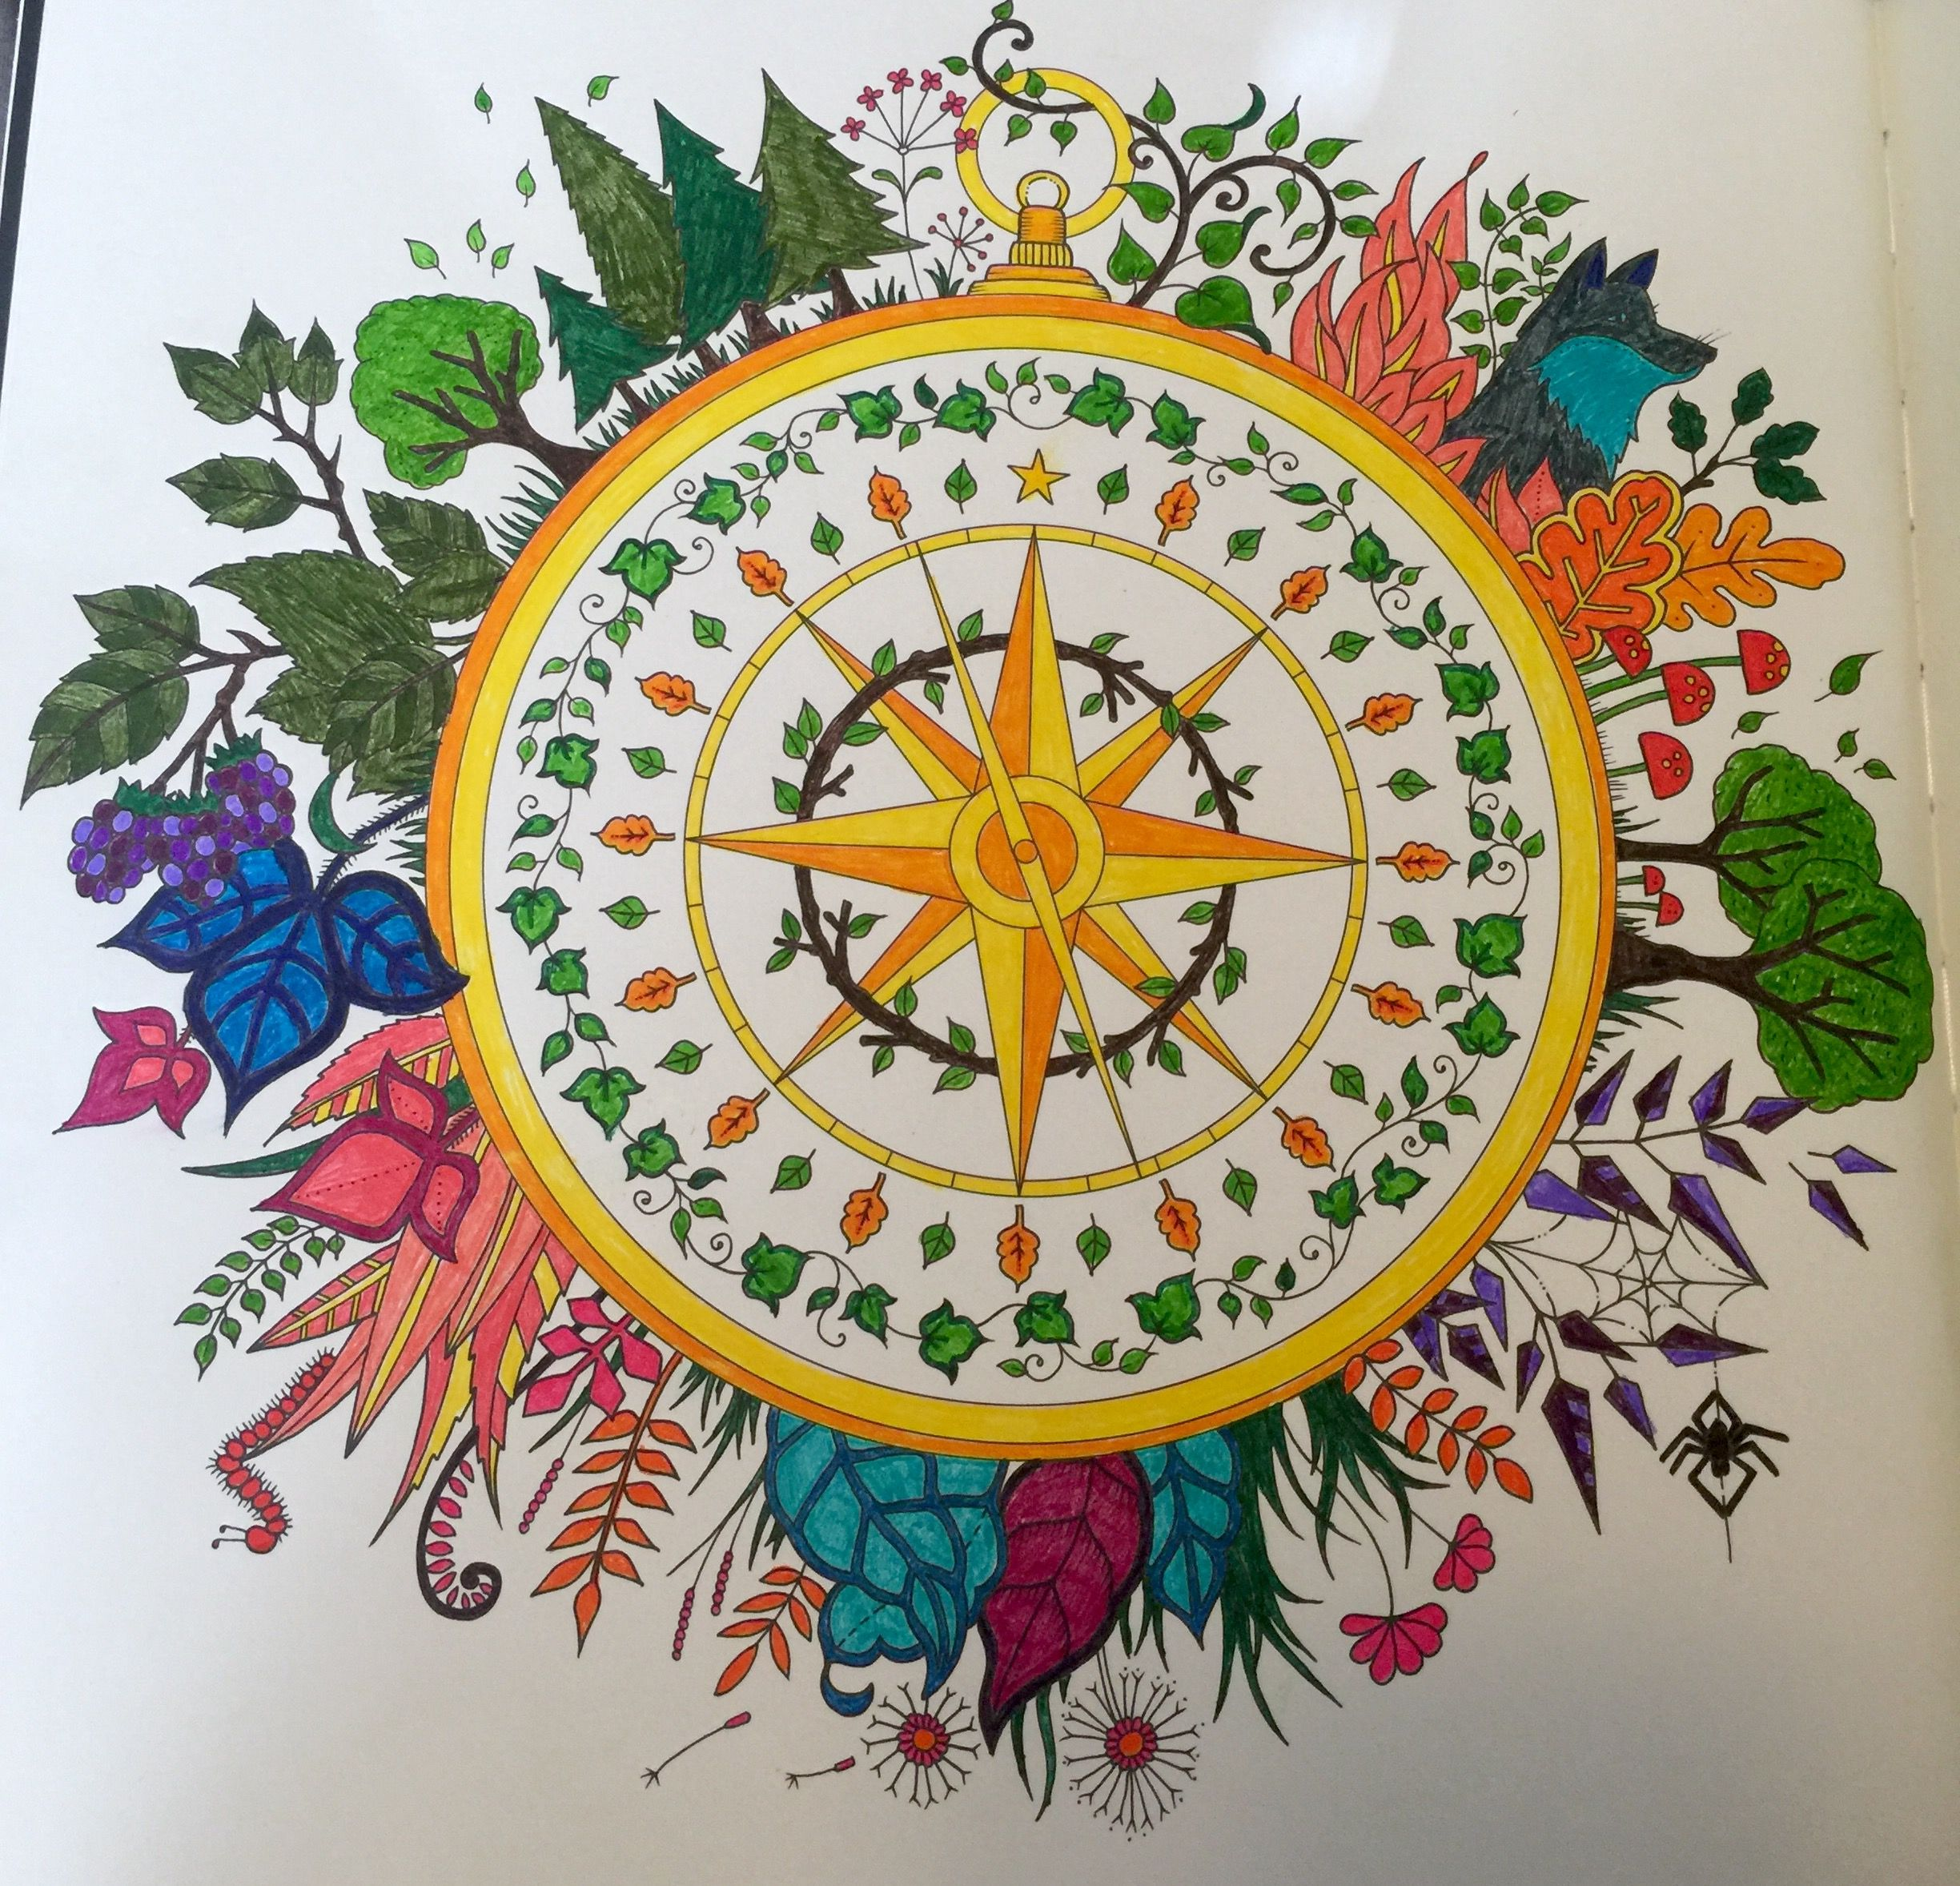 Enchanted forest coloring book website - Compass Enchanted Forest Coloring Book